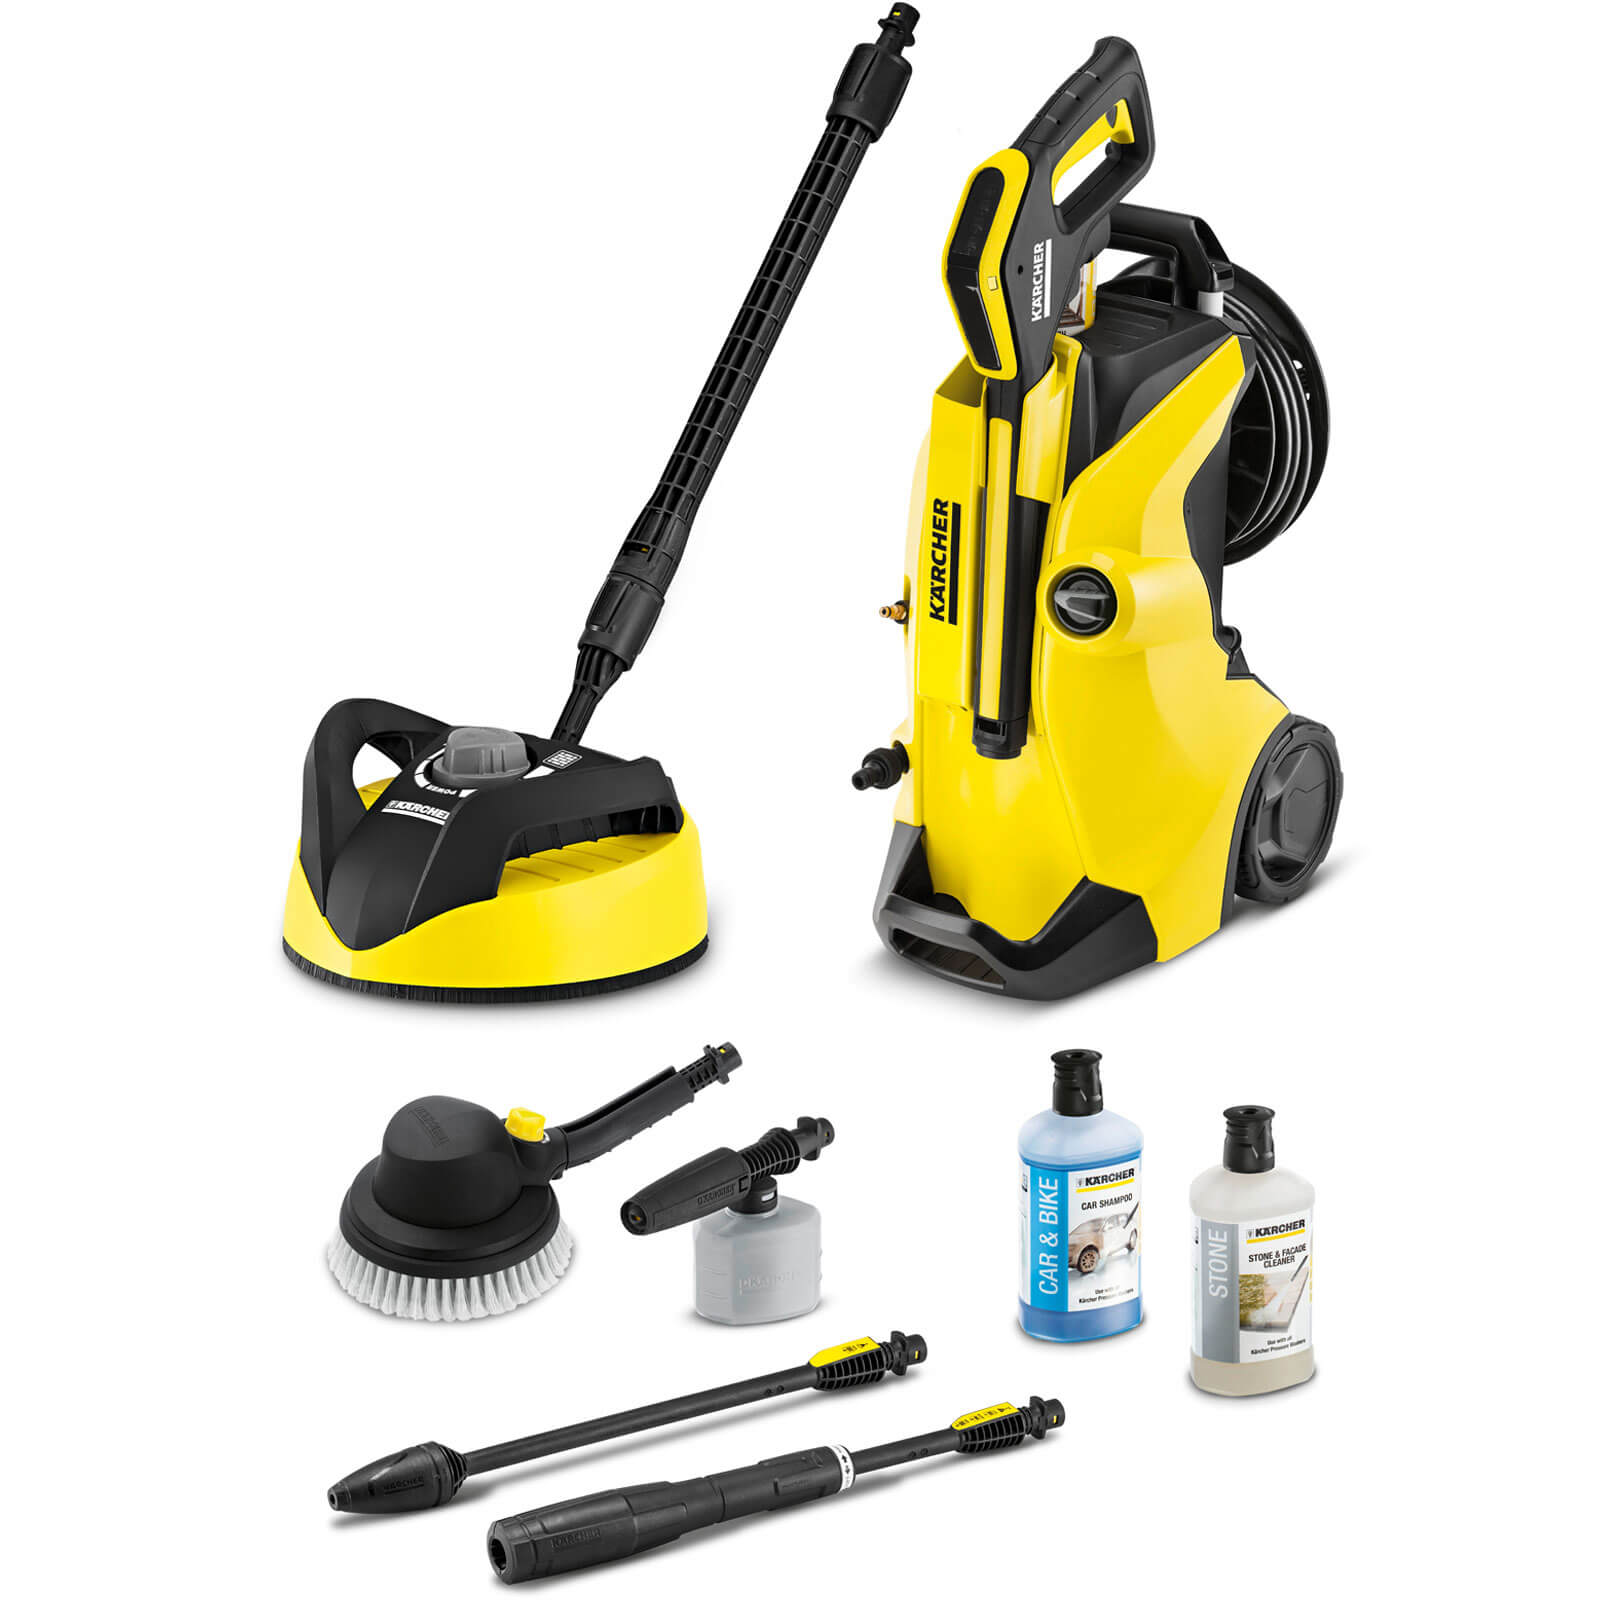 zzz karcher k4 premium full control car home pressure washer 130 bar. Black Bedroom Furniture Sets. Home Design Ideas